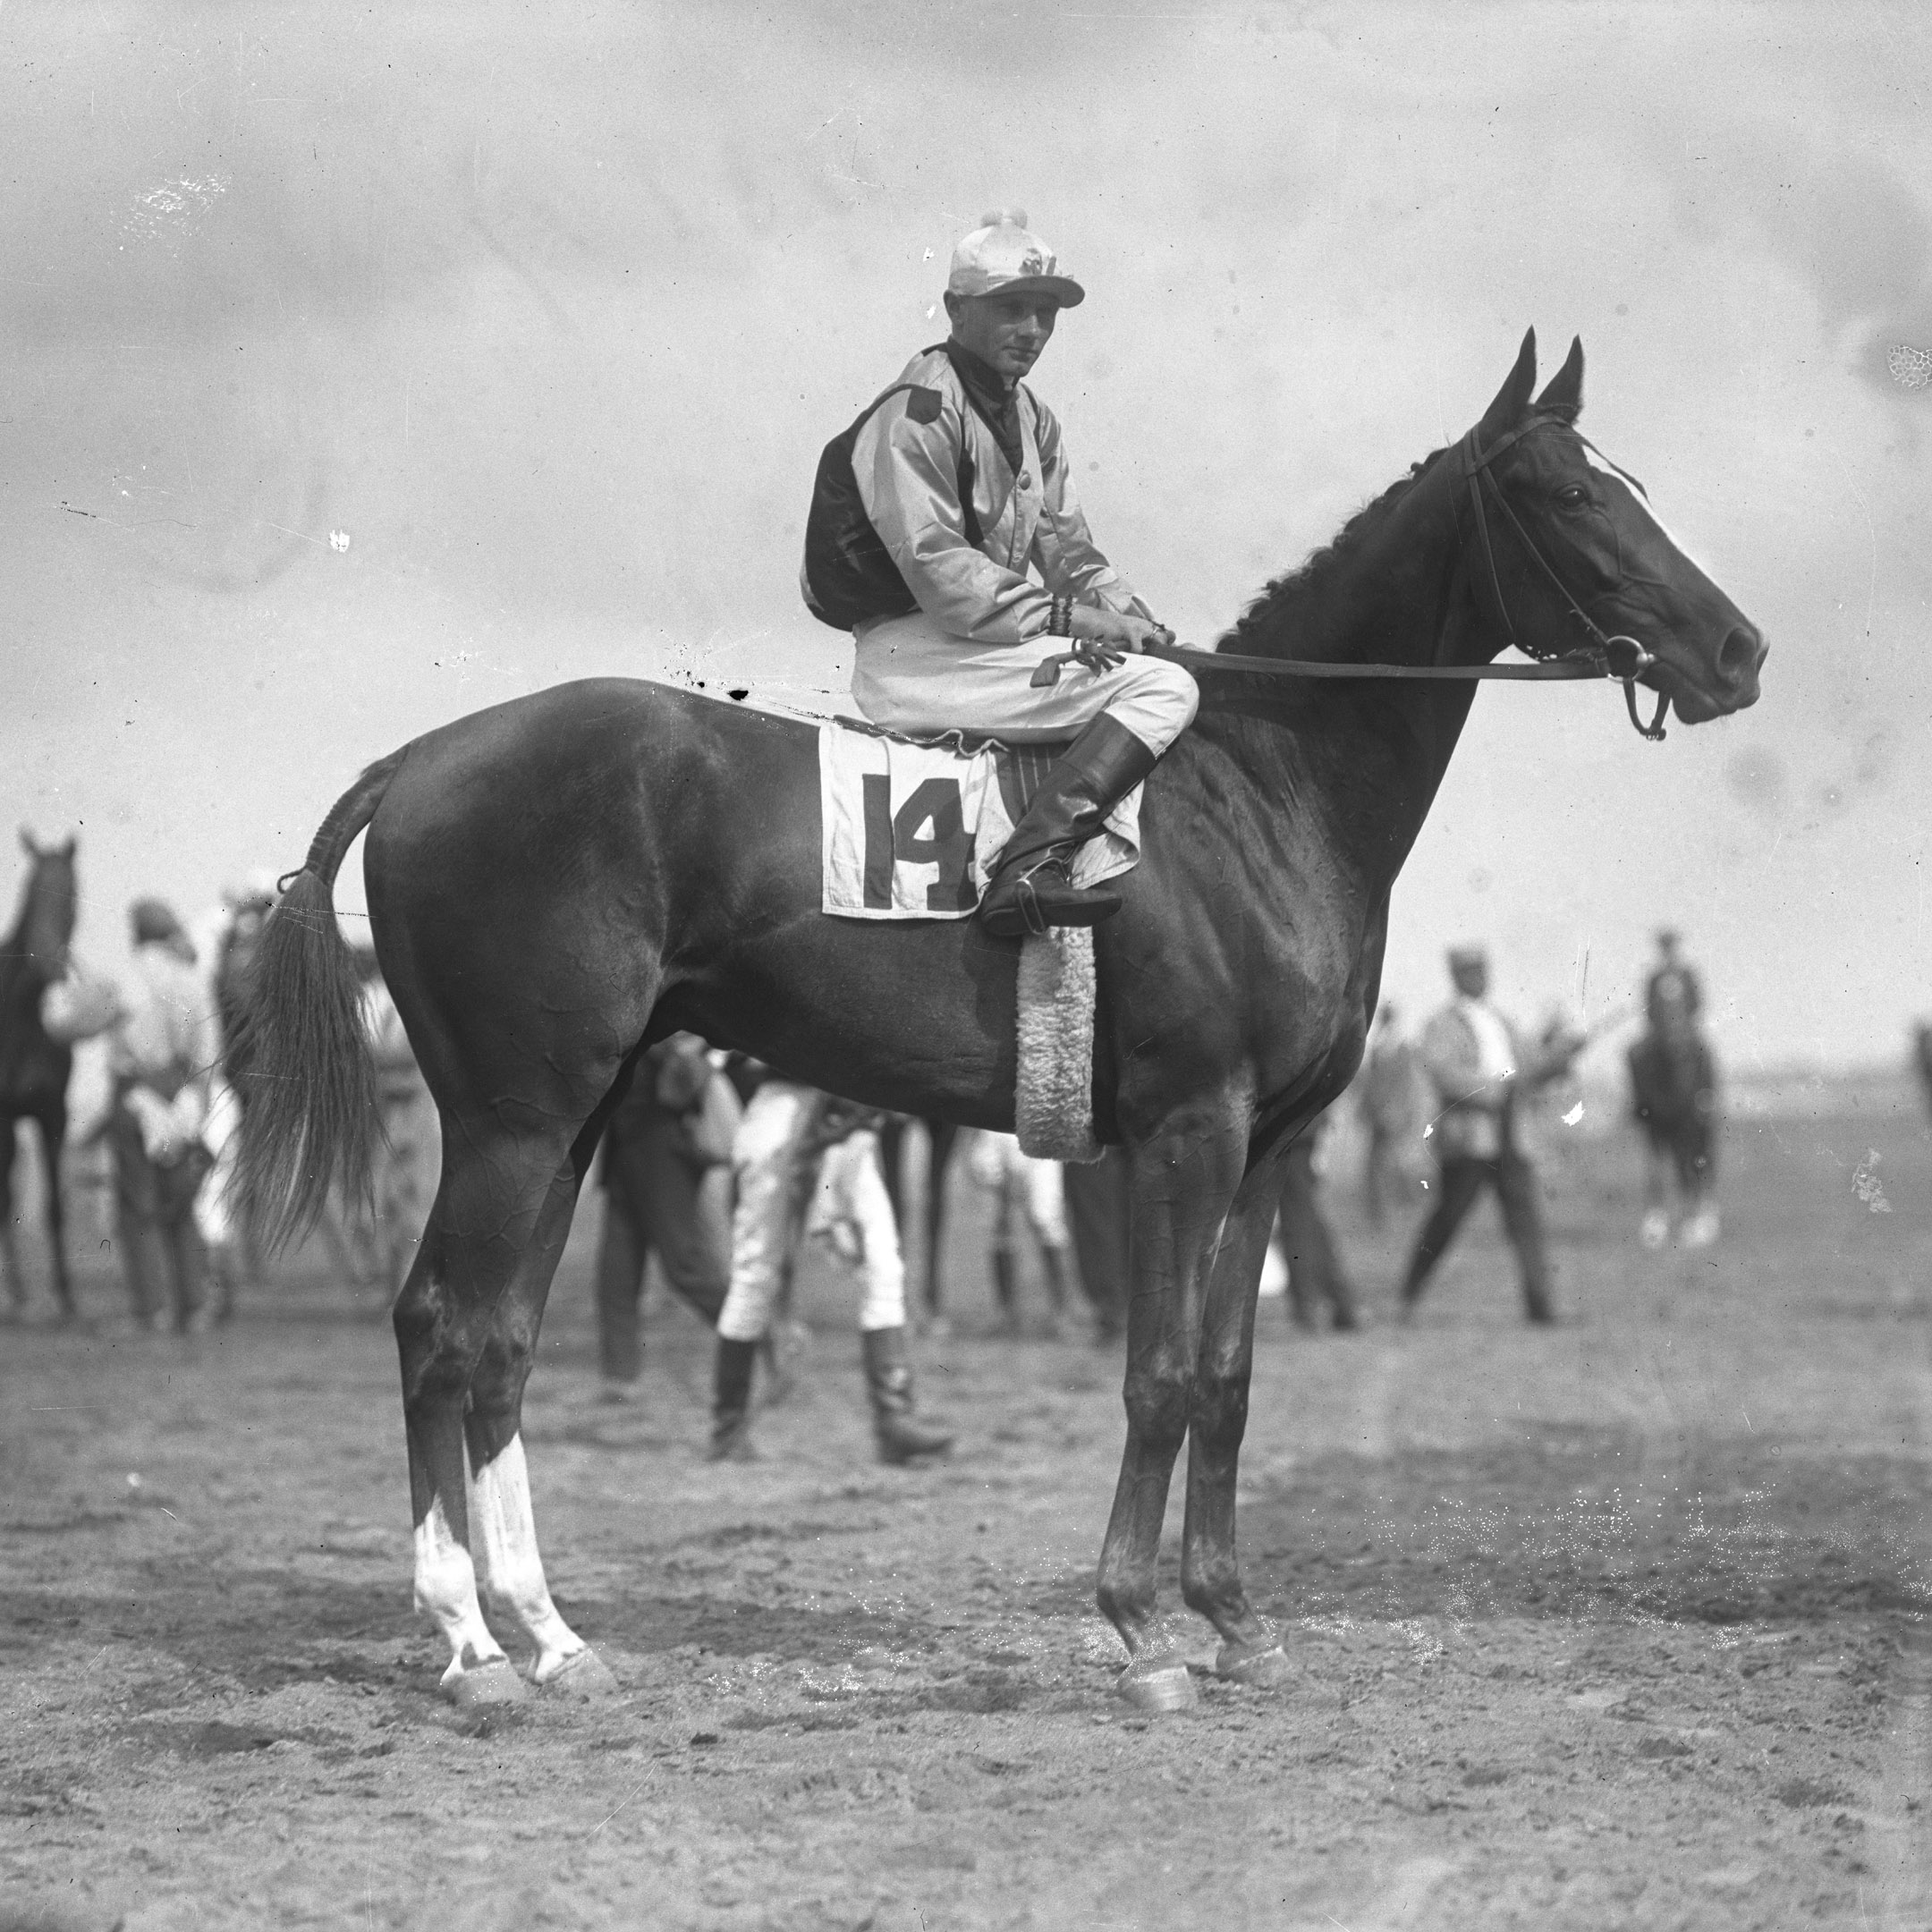 Sarazen with Earl Sande up, undated (Keeneland Library Cook Collection)